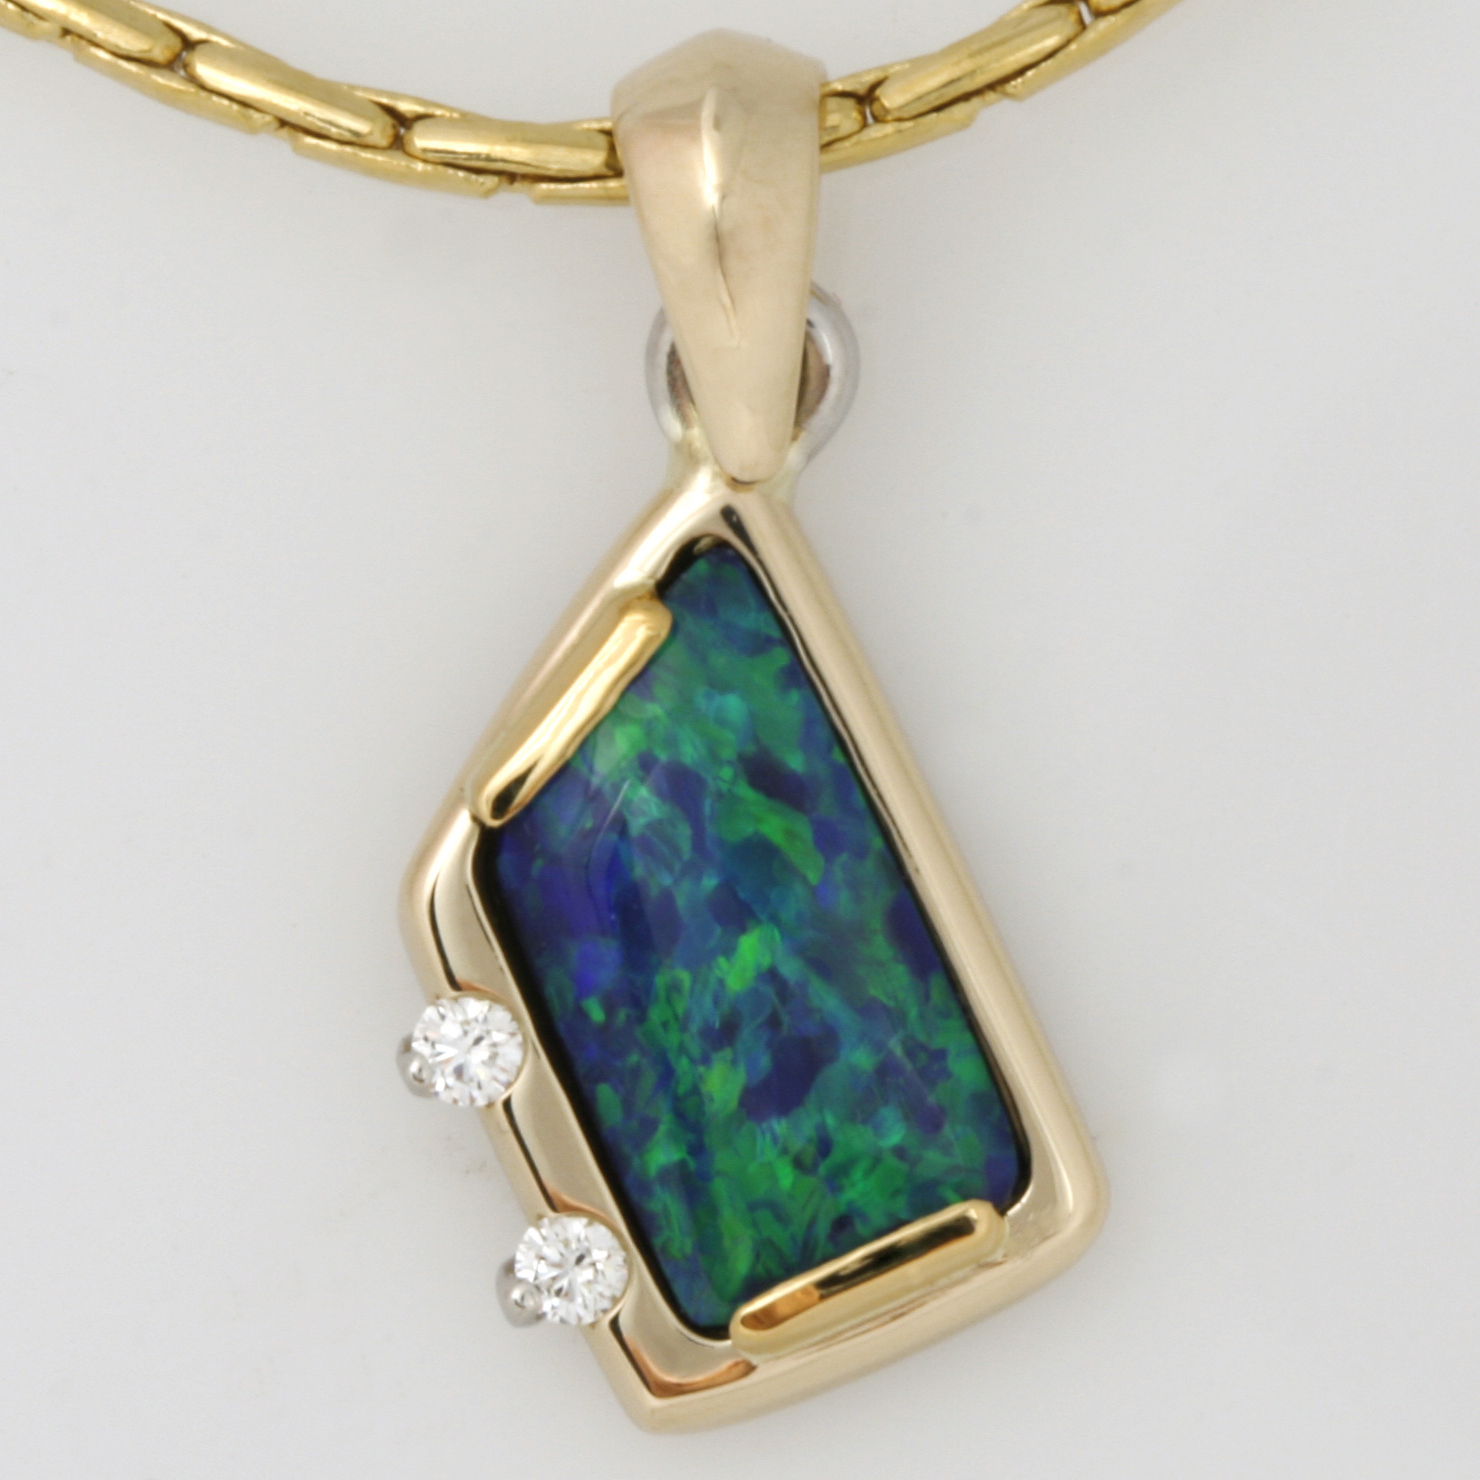 Handmade ladies 14ct yellow gold opal and diamond pendant